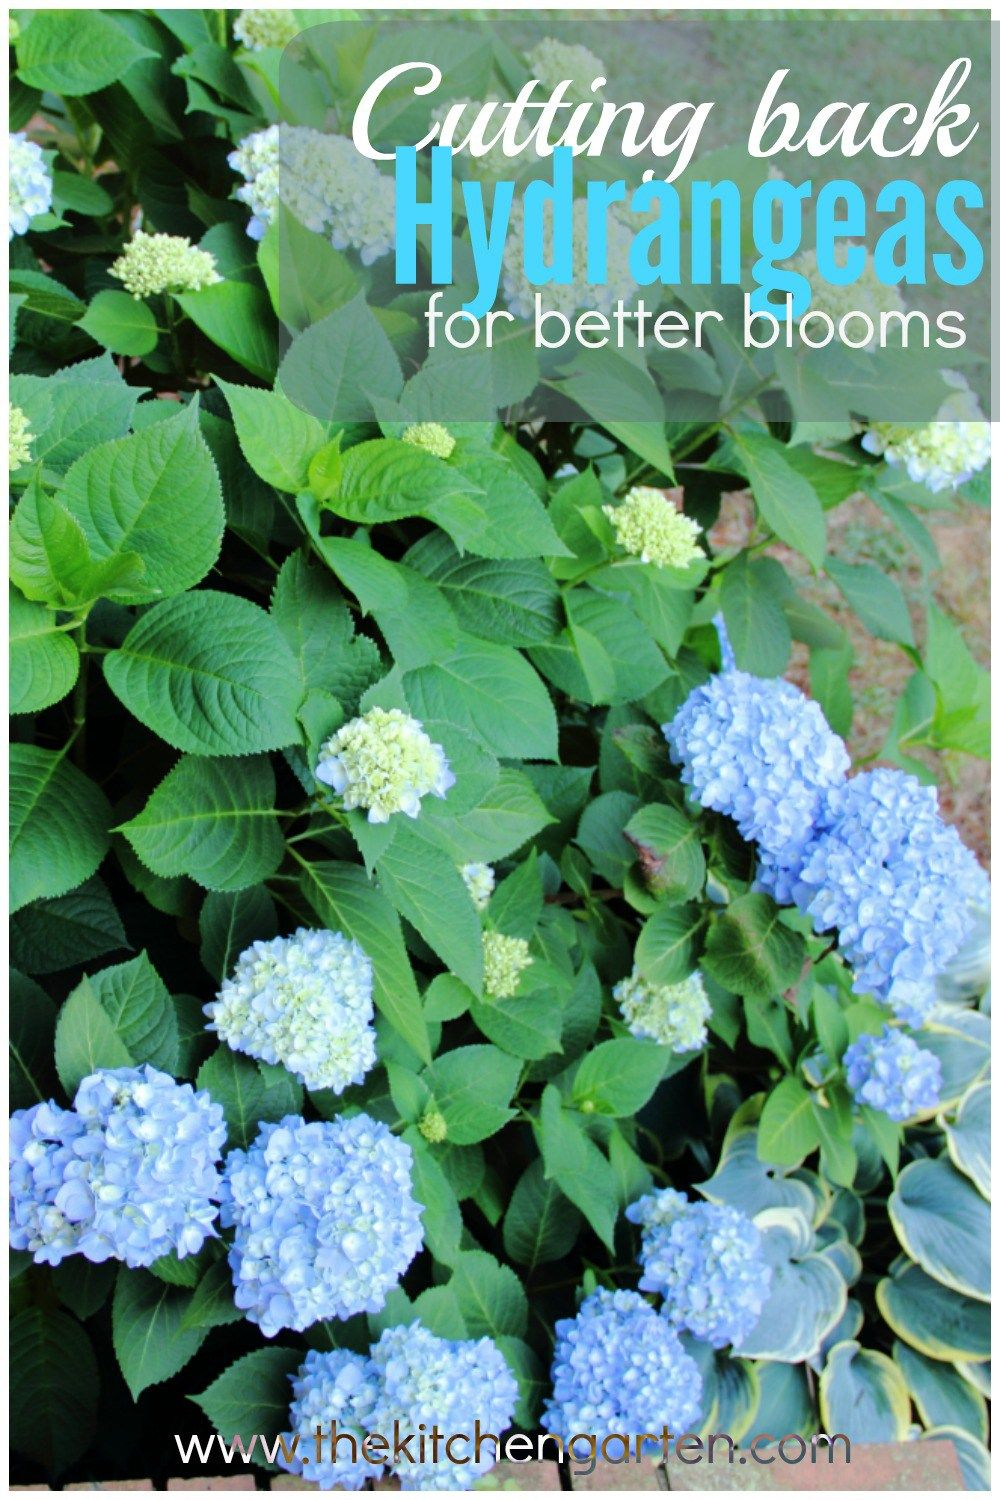 How To Prune Hydrangeas For Bigger Blooms Growing Hydrangeas Pruning Hydrangeas Hydrangea Not Blooming